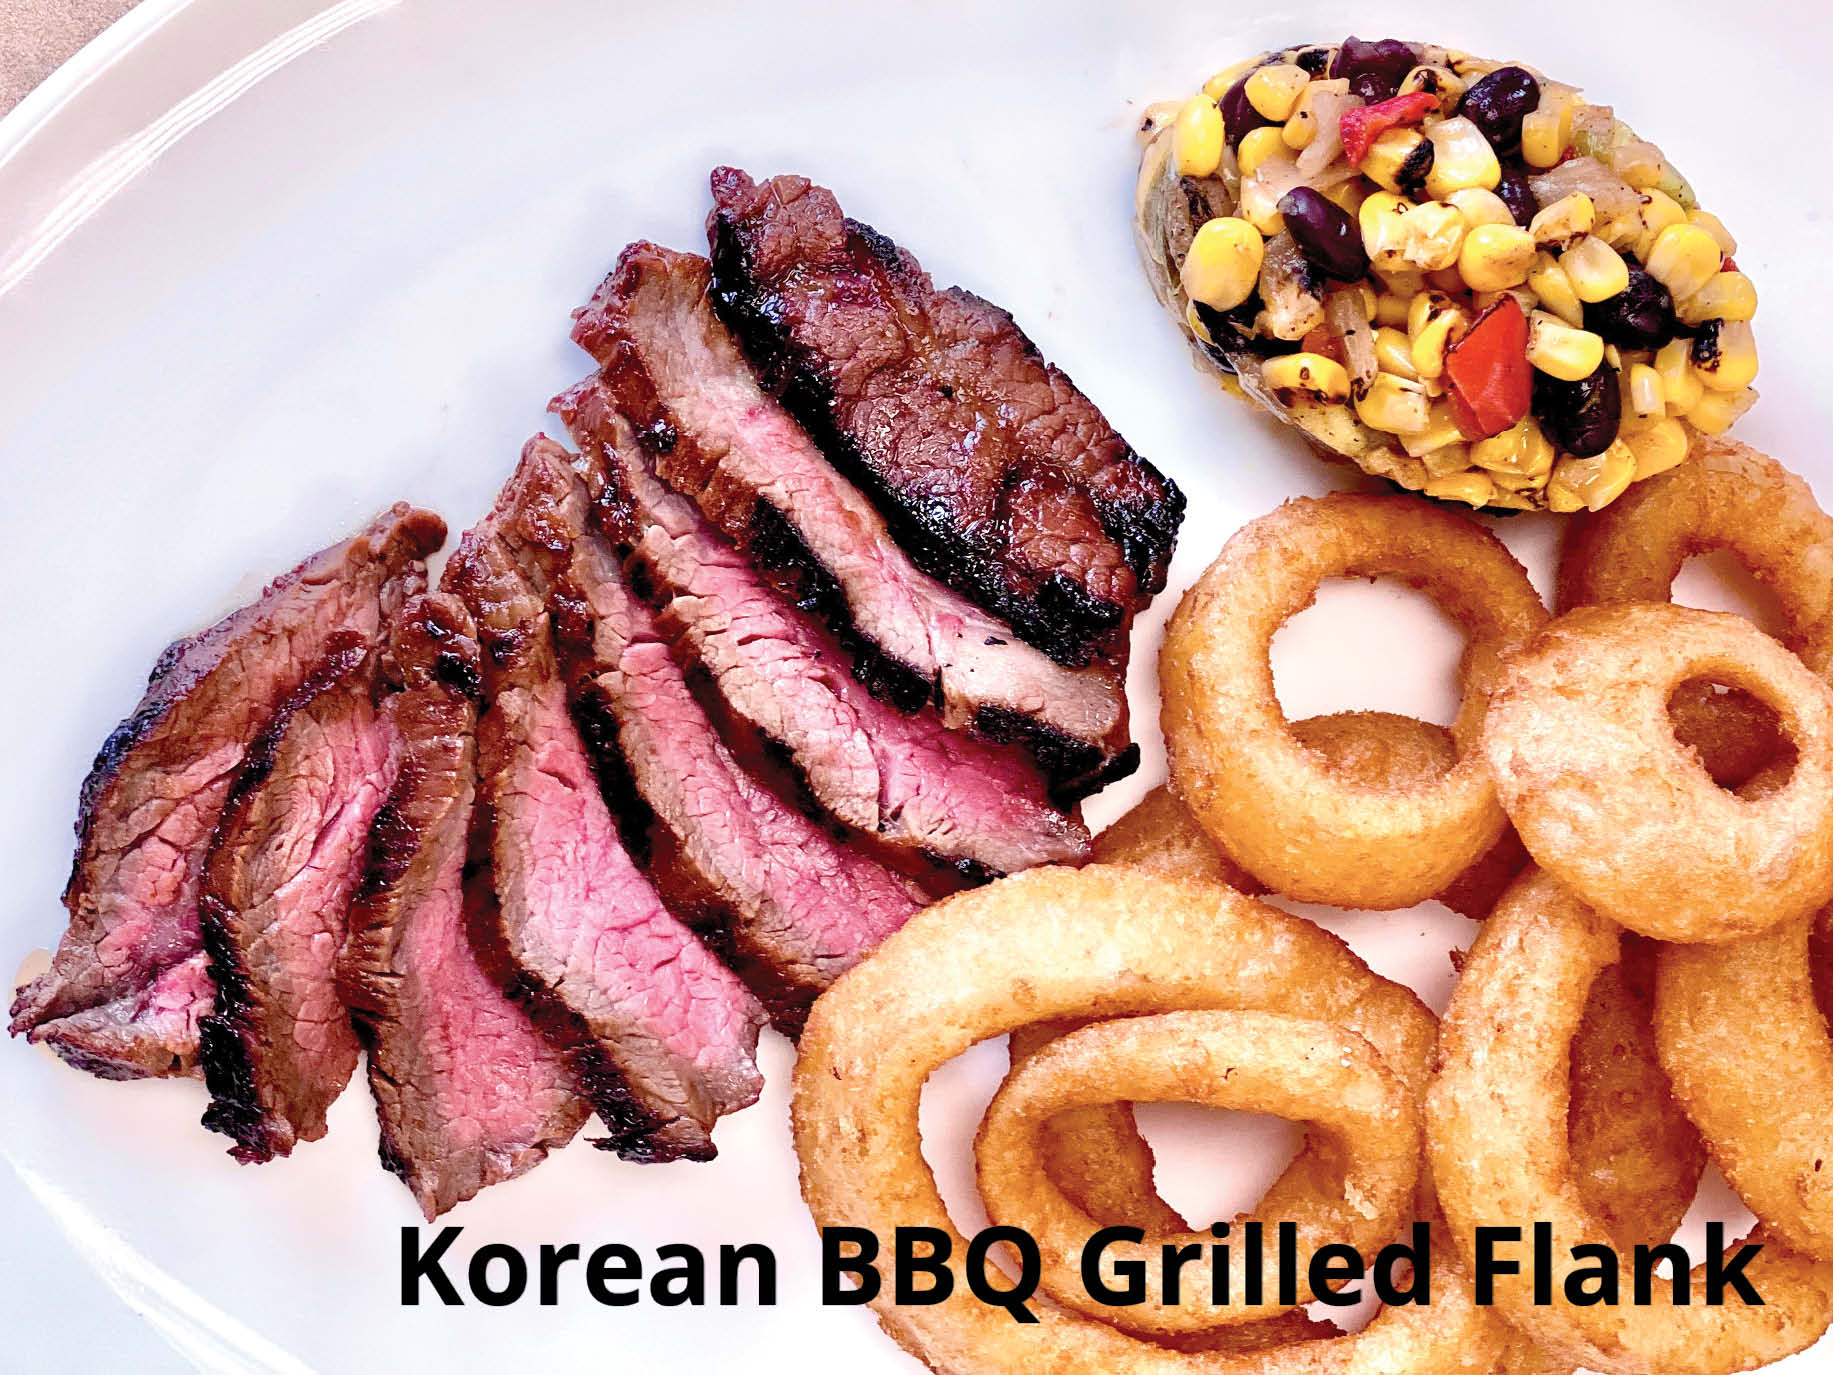 Korean BBQ Grilled Flank